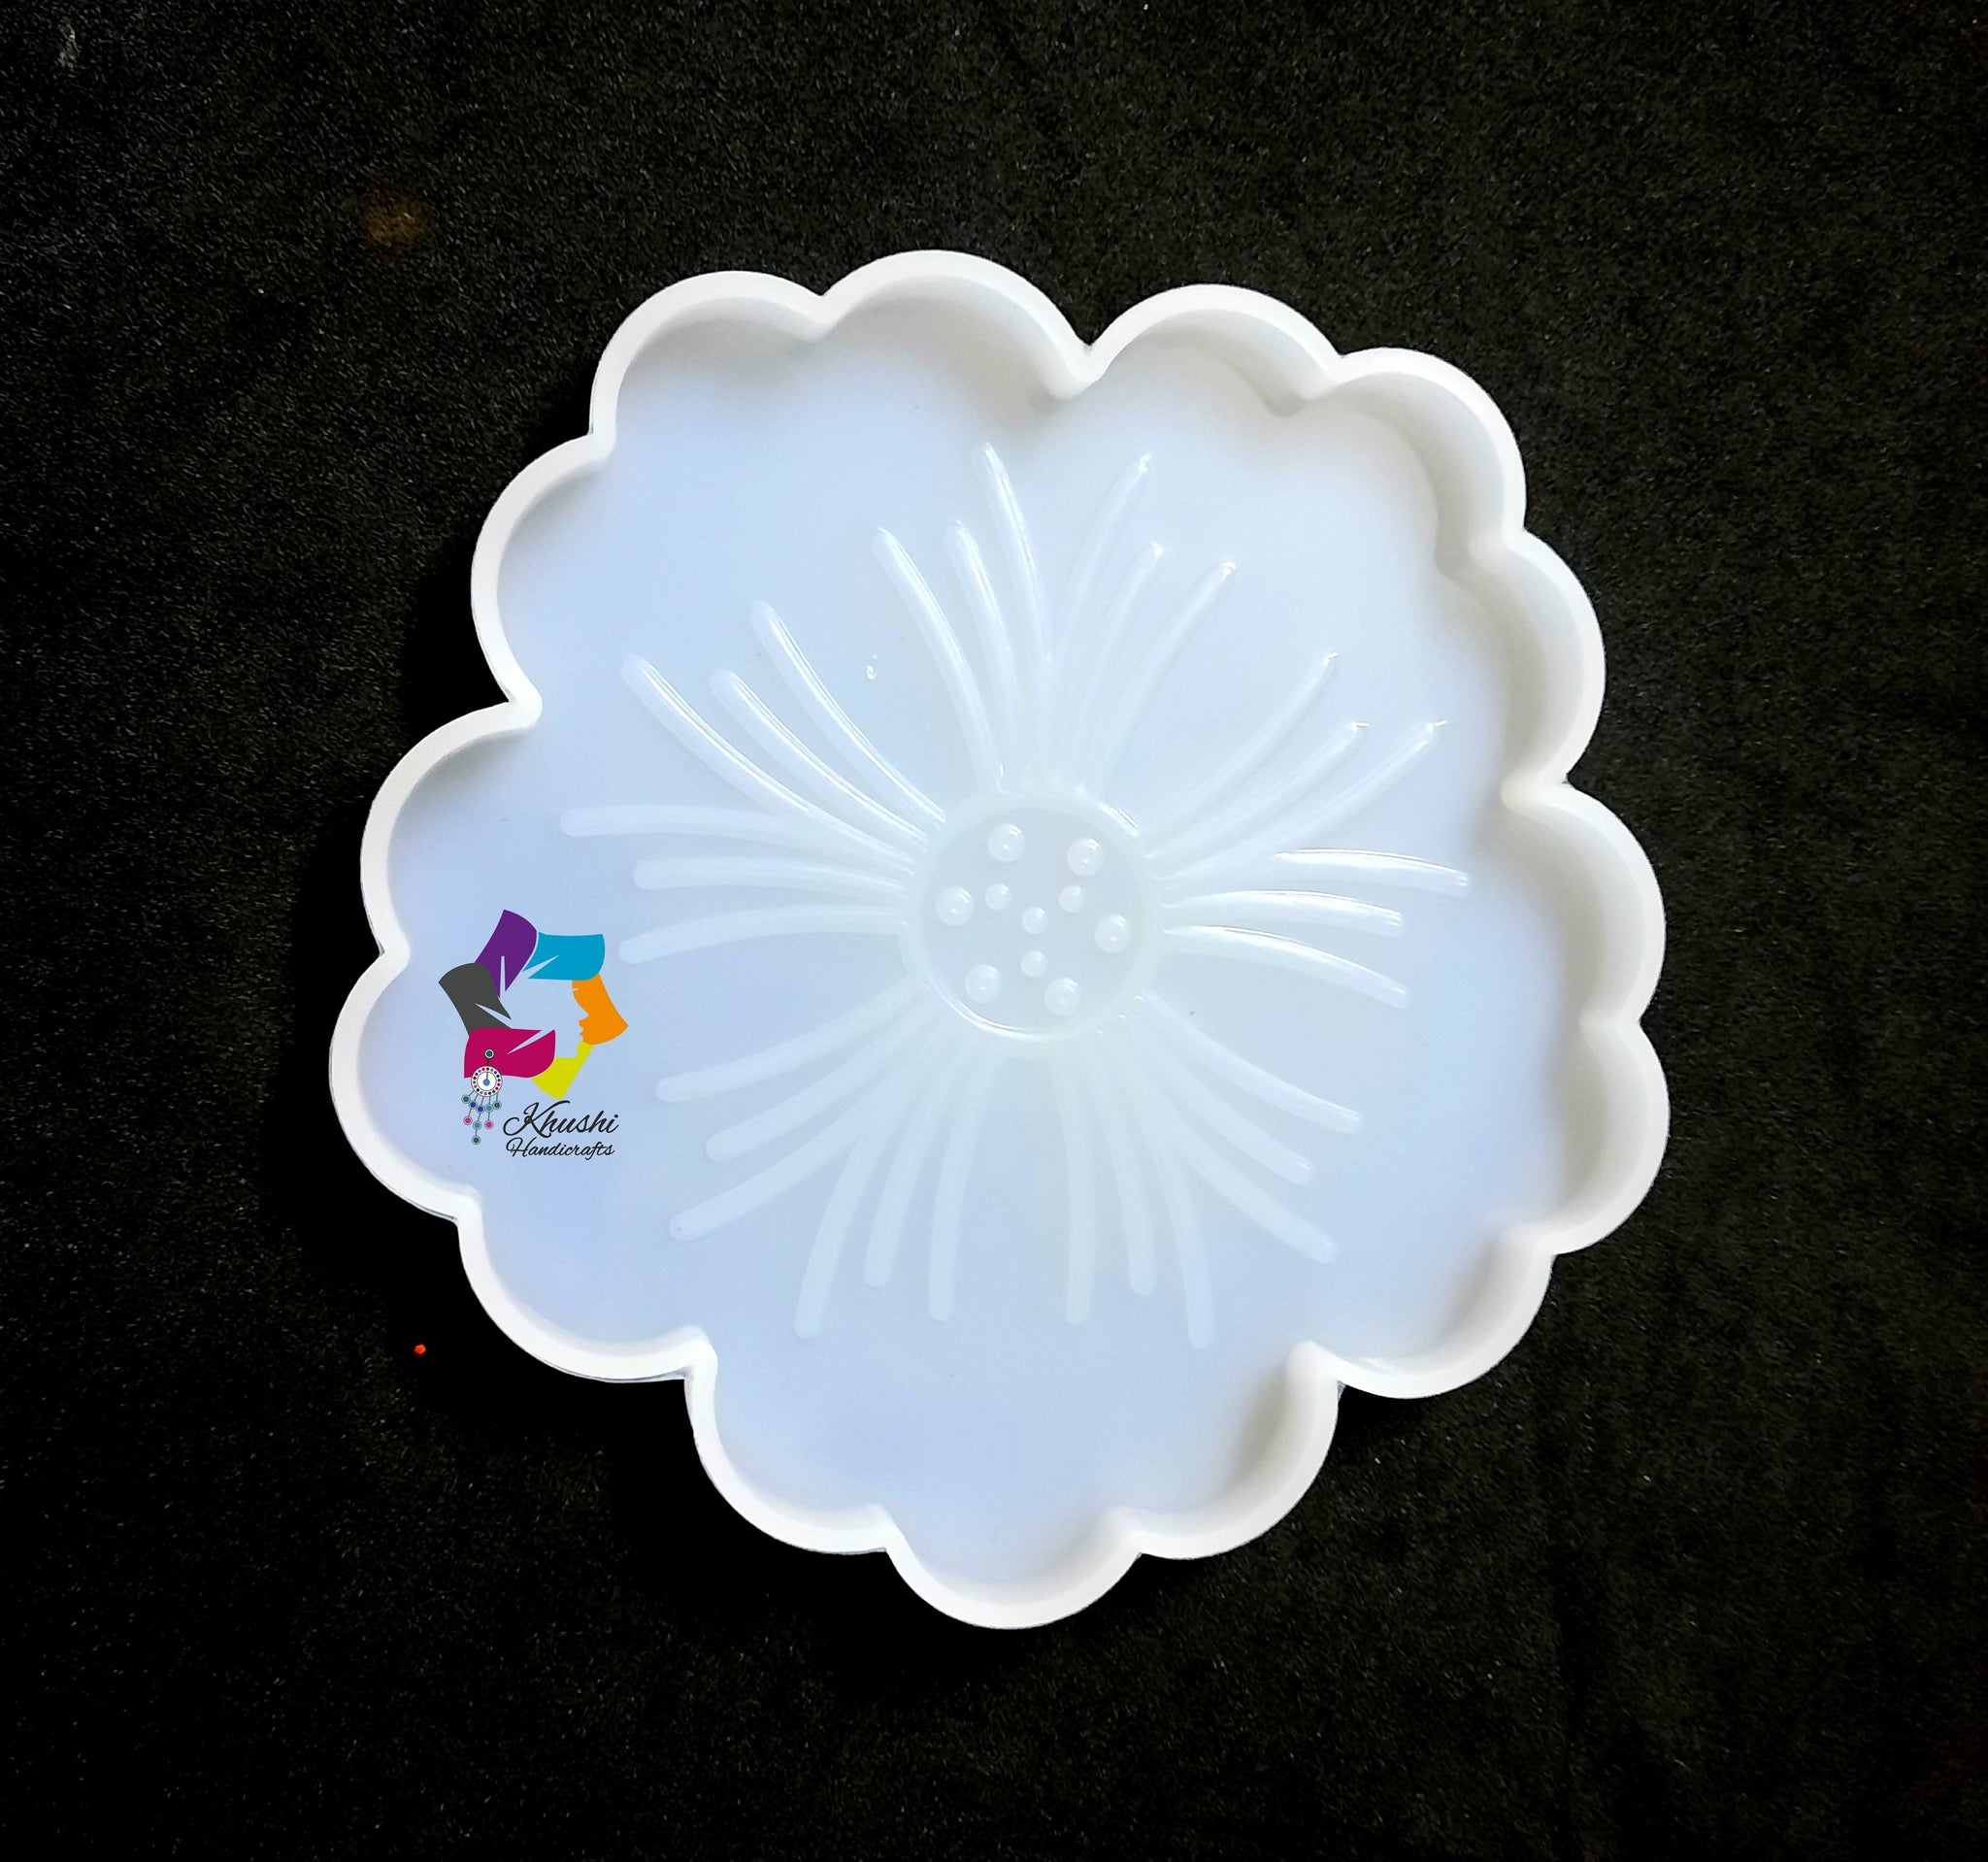 Flower Coaster mold